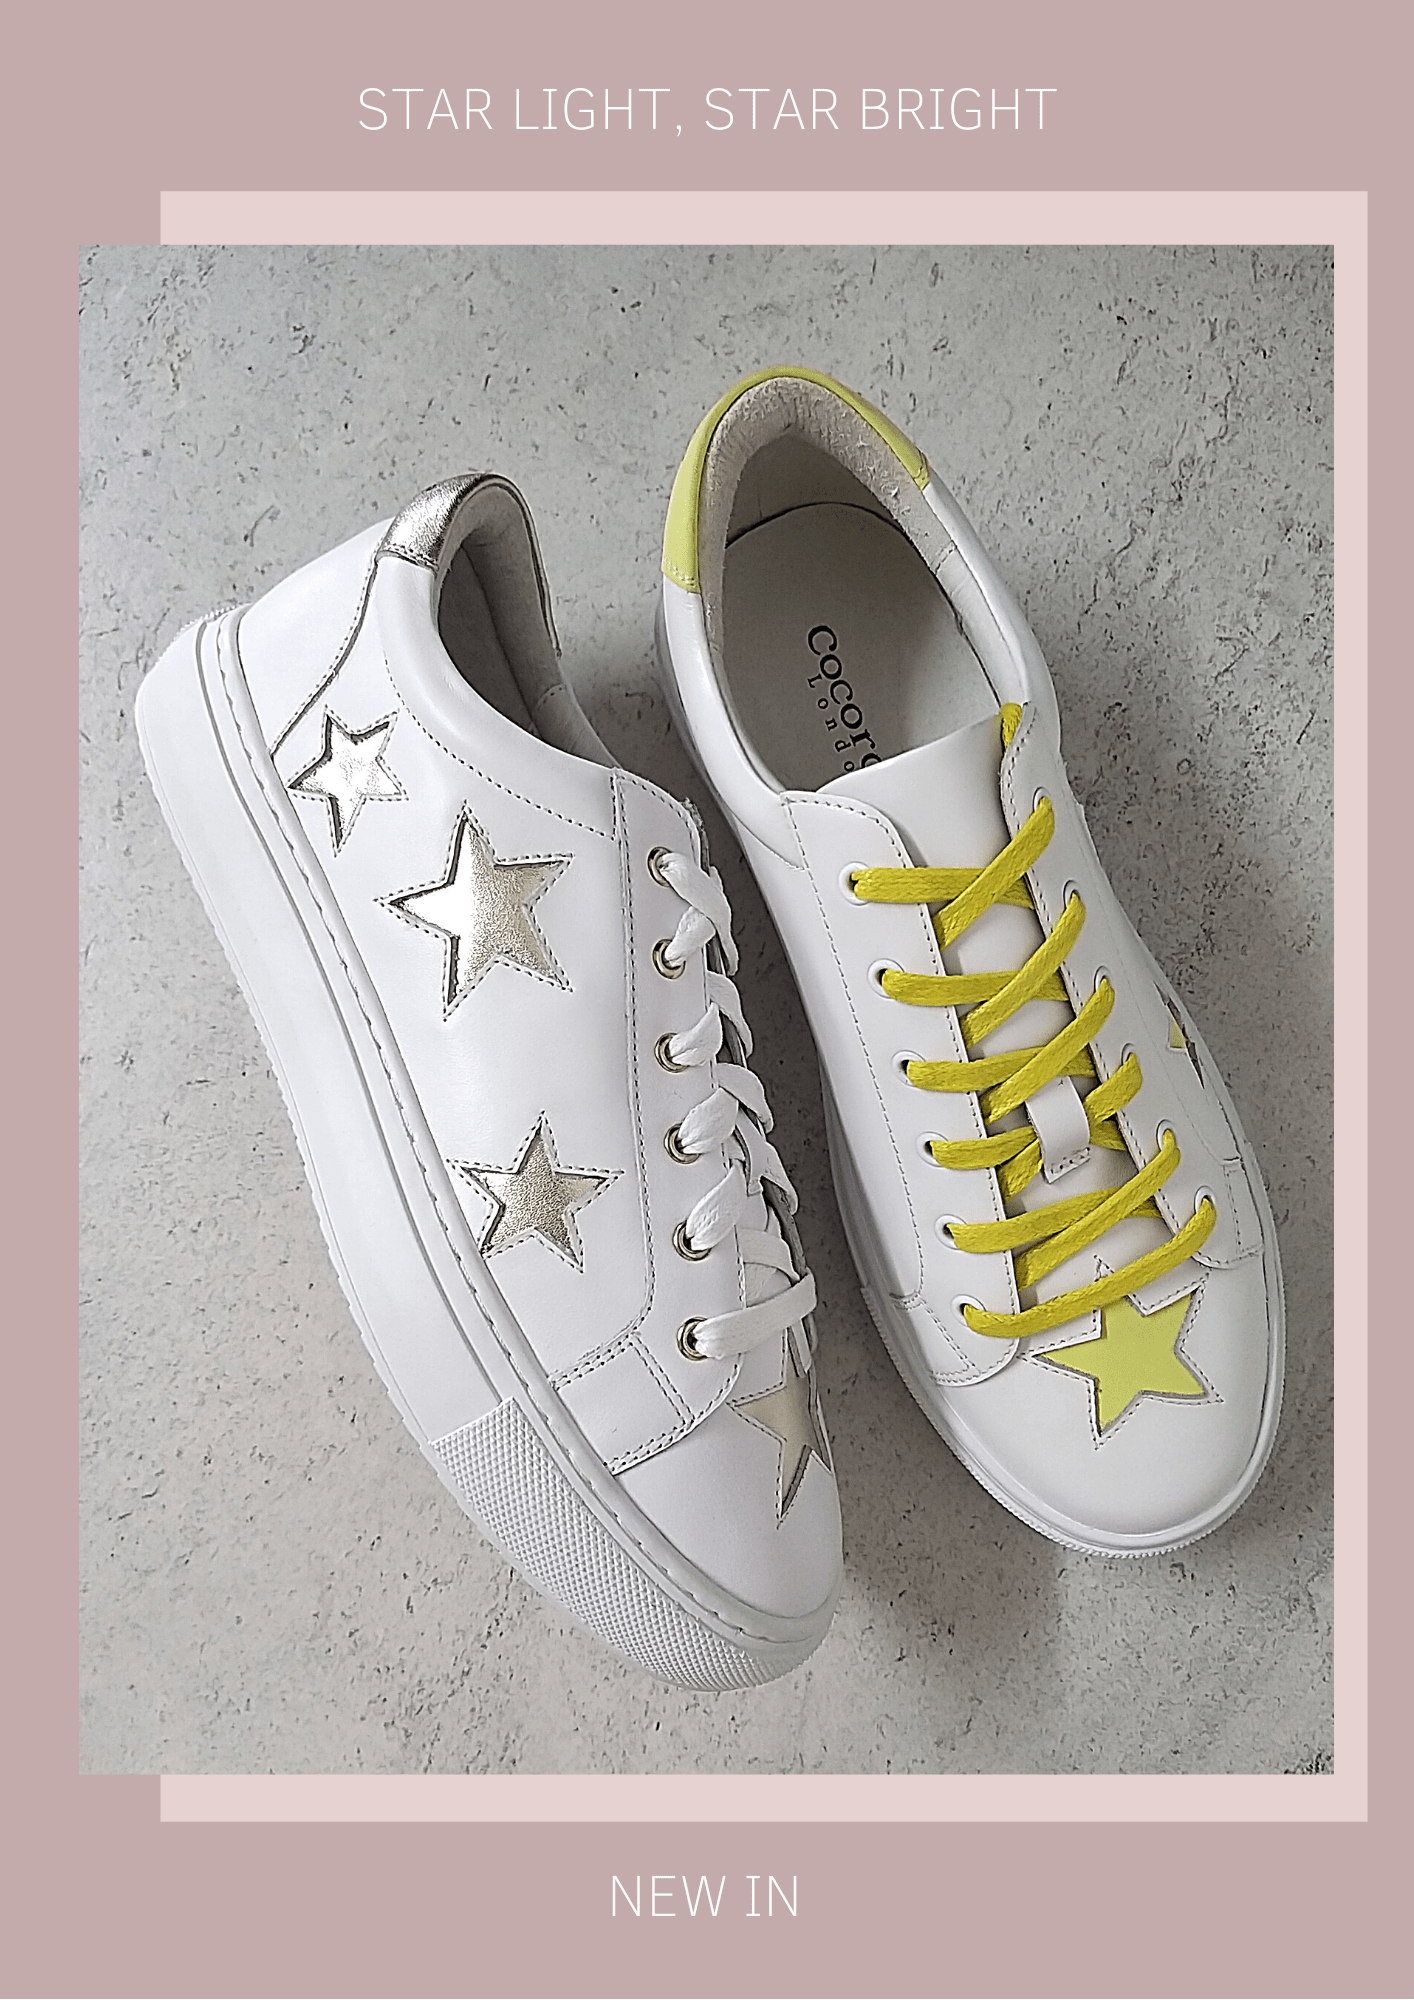 Star Light, Star Bright - star print trainers in white and gold and white and yellow leather